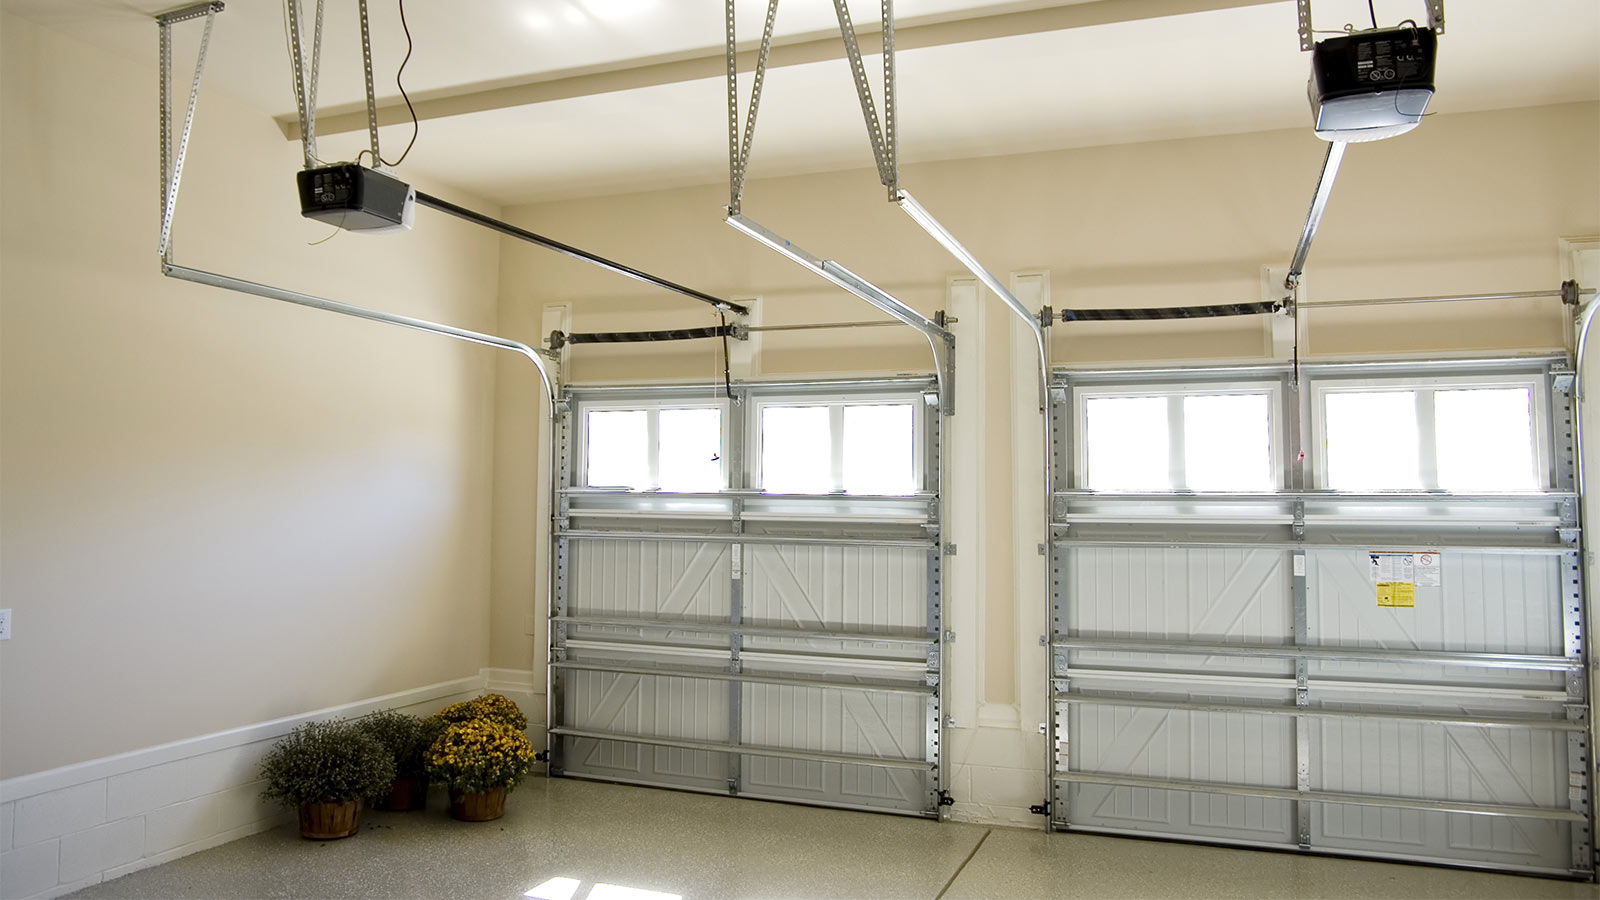 Sectional Garage Doors from High Speed Roller Shutters Basildon suppliers.